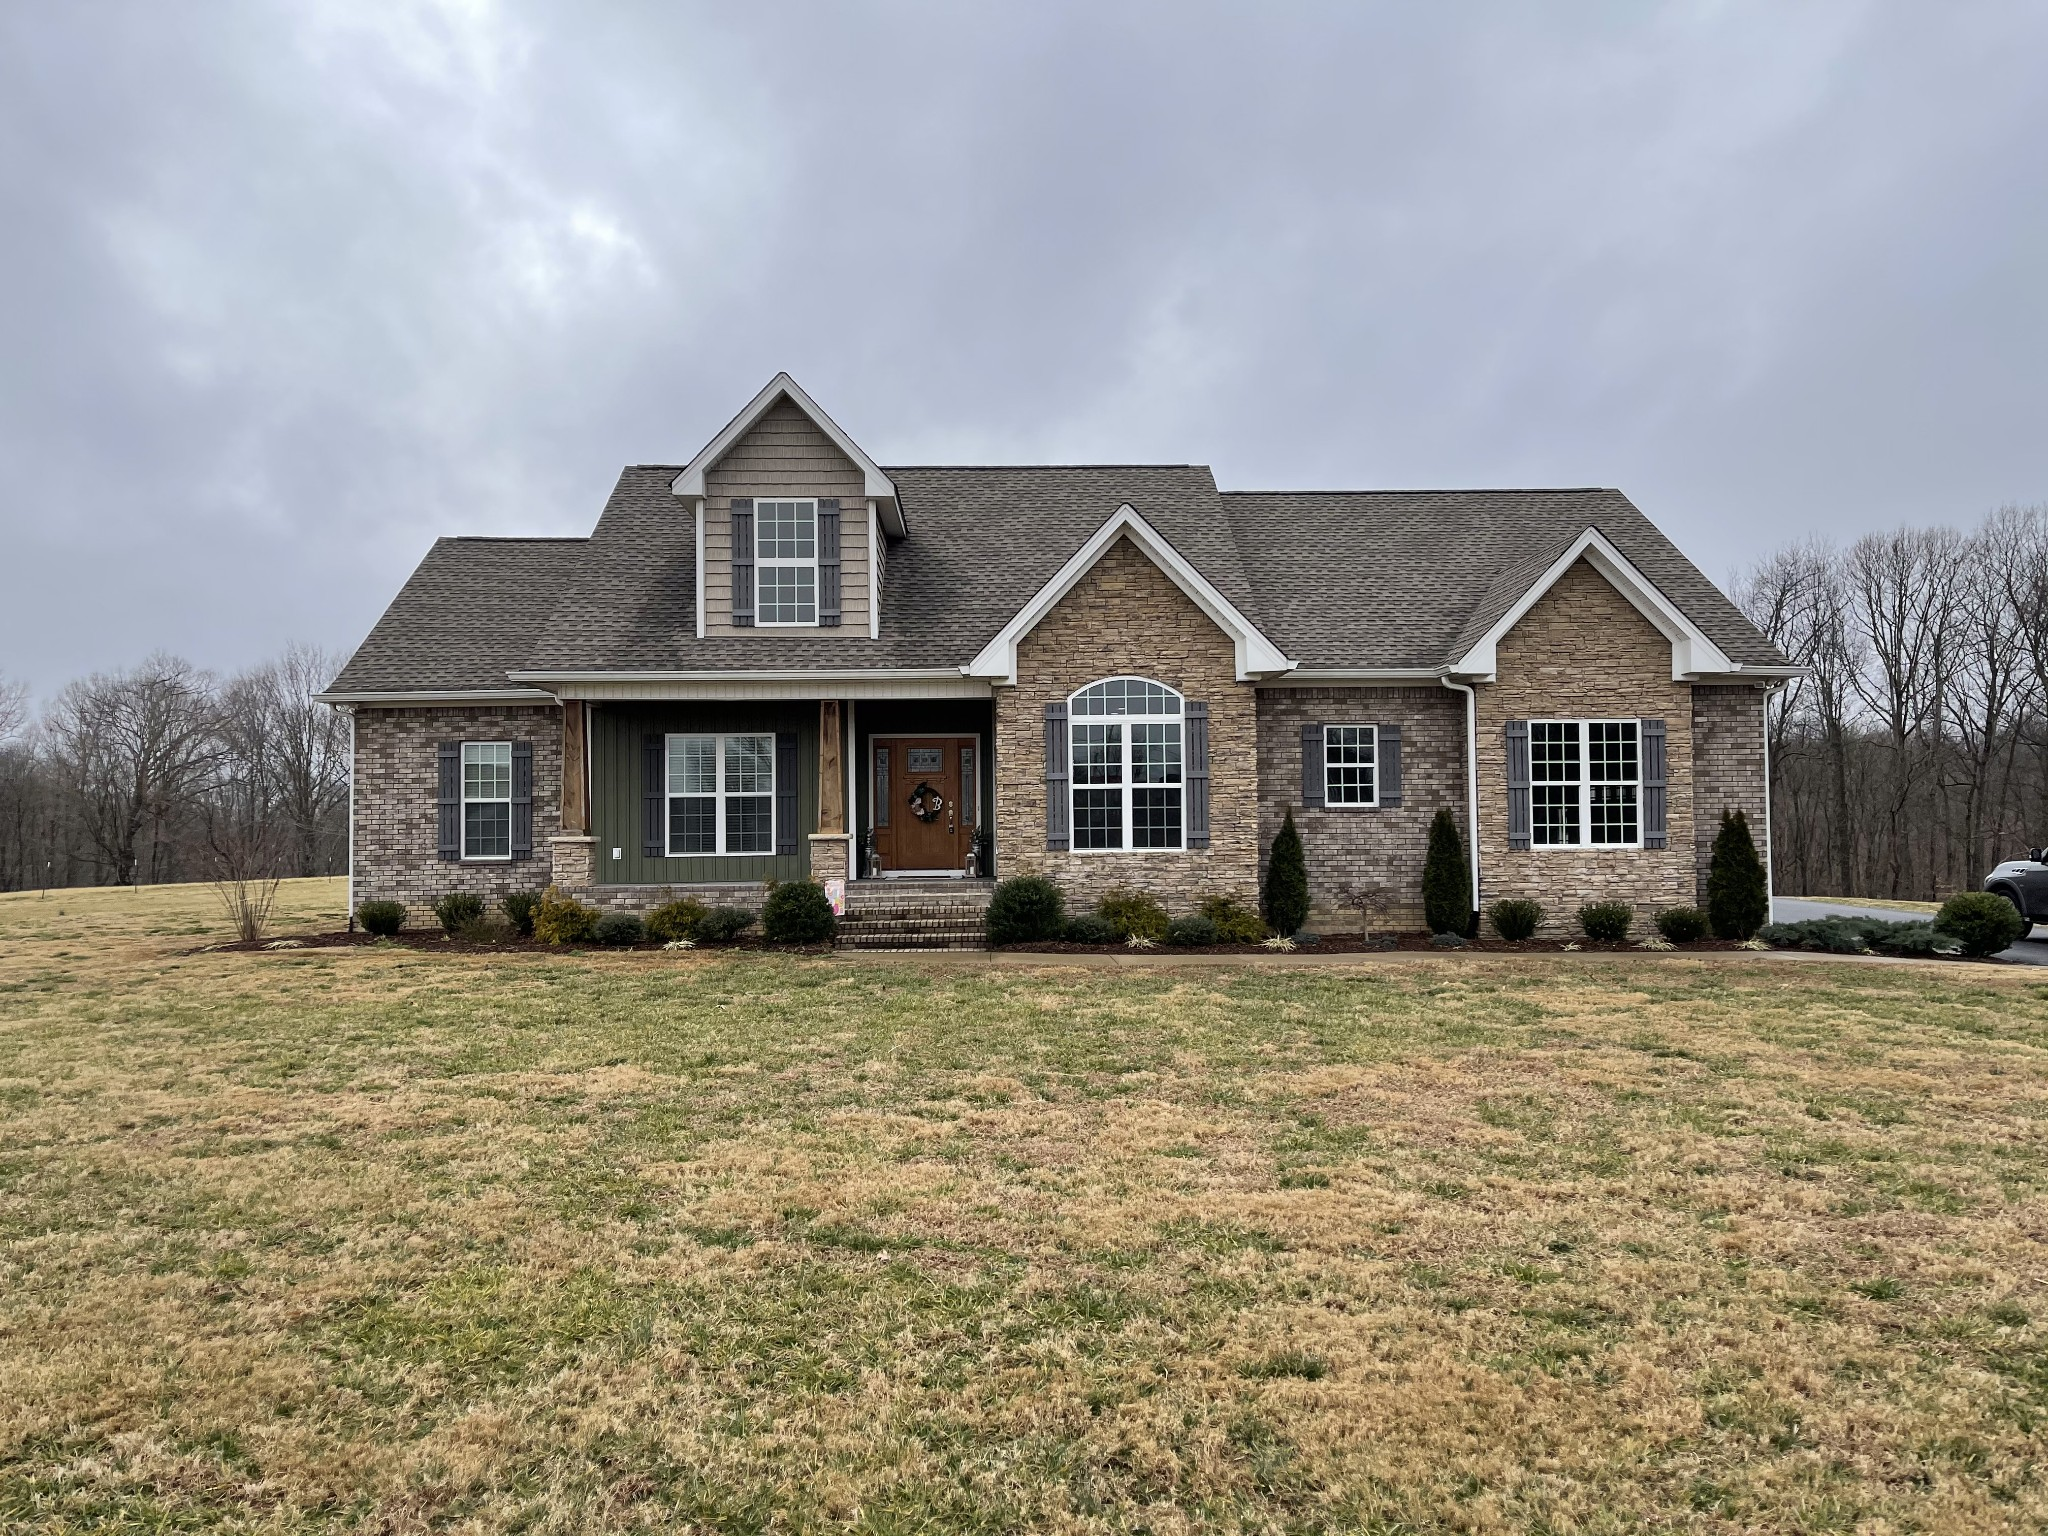 191 Haley Springs Ln Property Photo - Lafayette, TN real estate listing